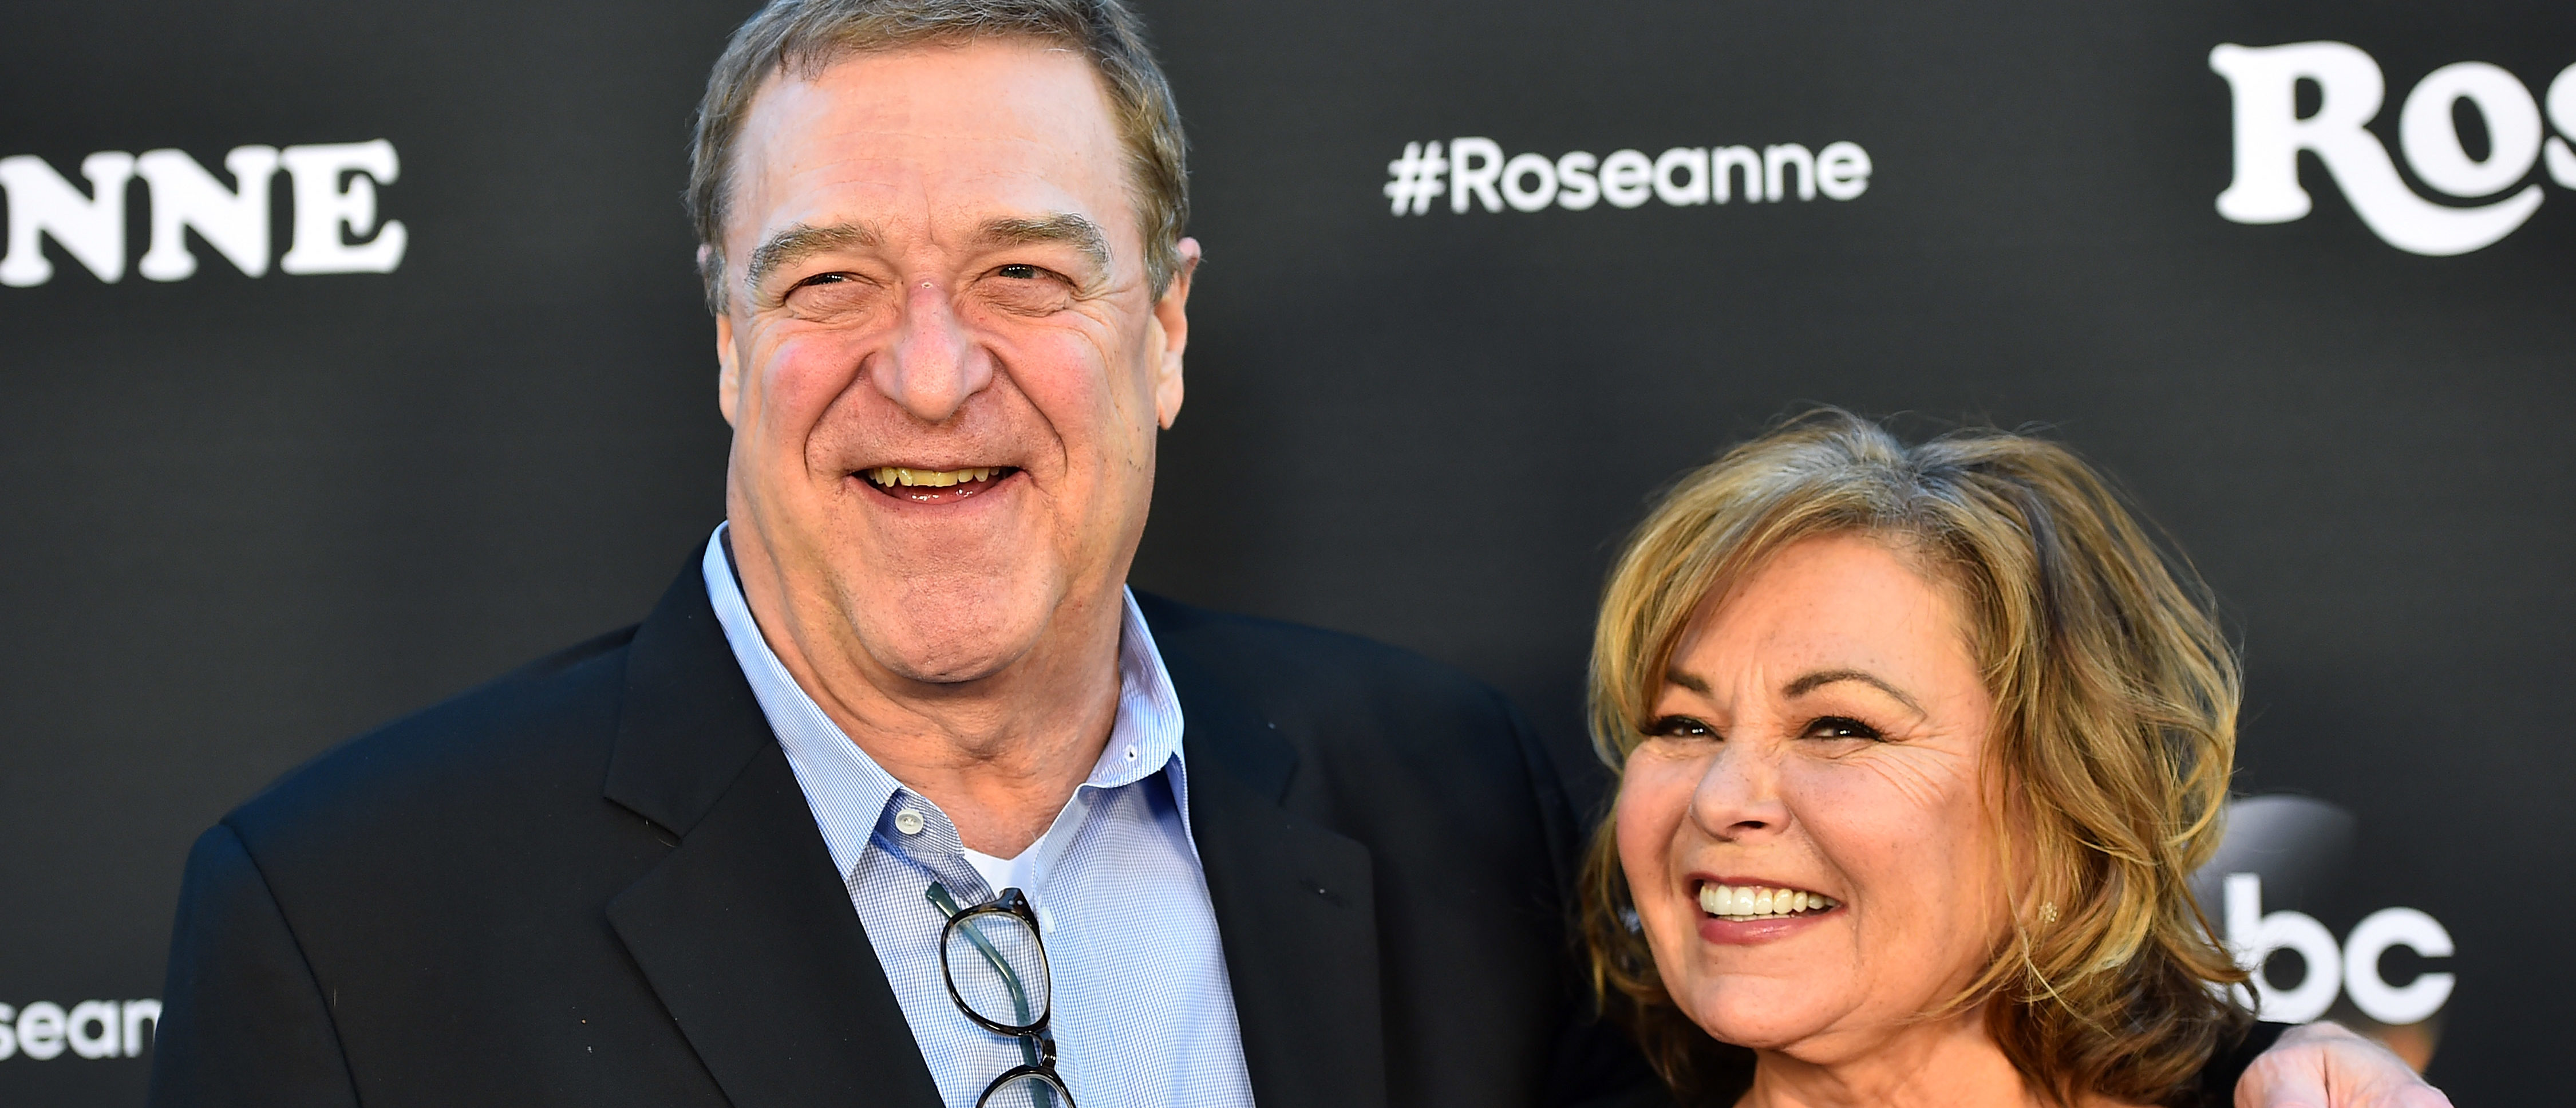 "BURBANK, CA - MARCH 23: John Goodman and Roseanne Barr attend the premiere of ABC's ""Roseanne"" at Walt Disney Studio Lot on March 23, 2018 in Burbank, California. (Photo by Alberto E. Rodriguez/Getty Images)"